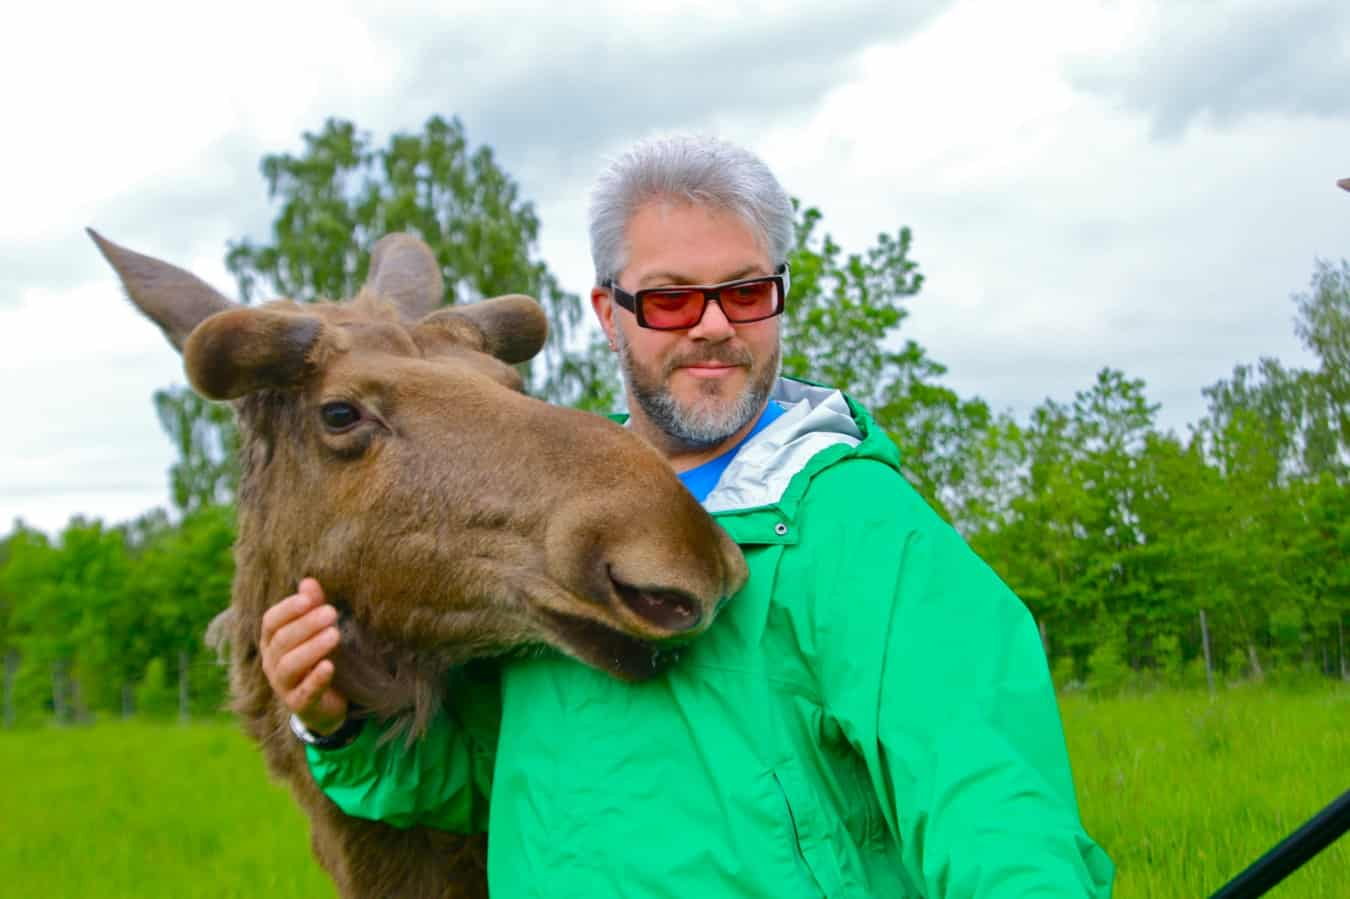 Oskar, the Coolest Moose in Sweden, at Falkoping's Wragarden Farm